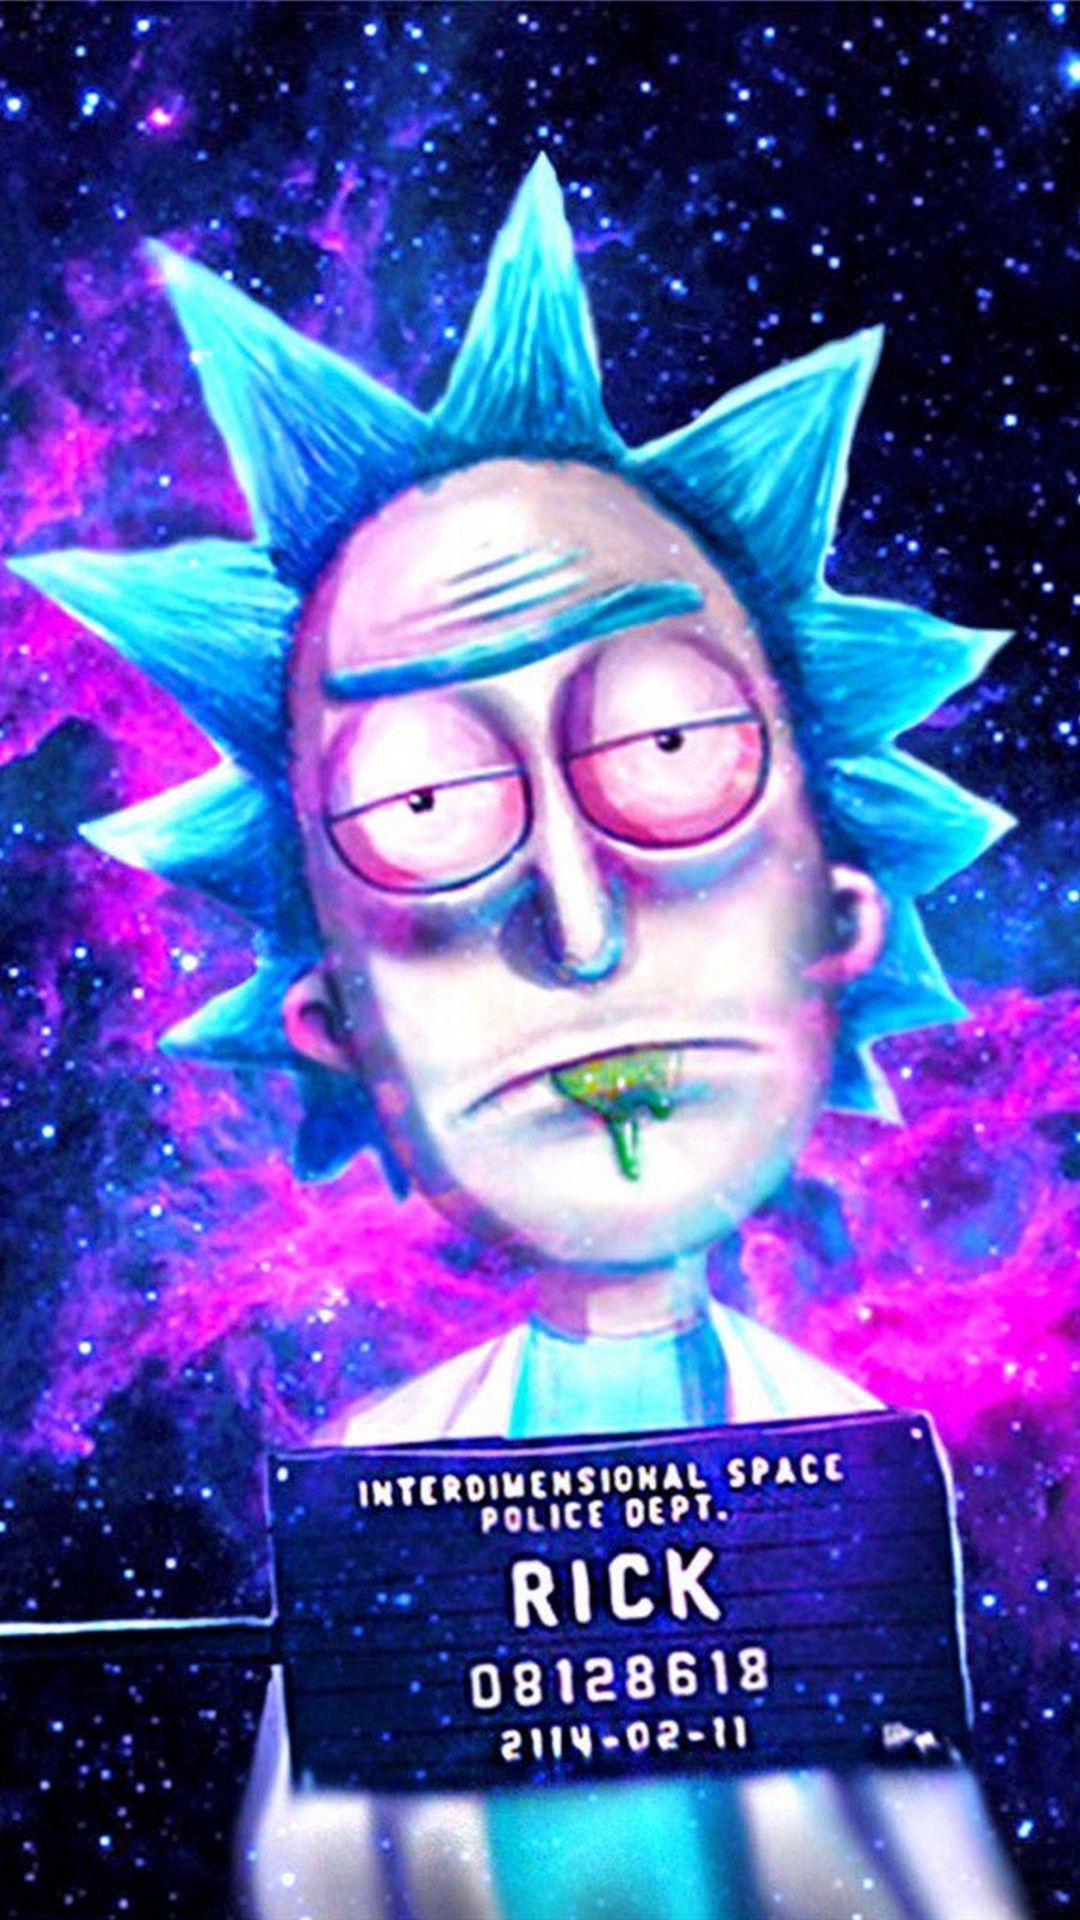 Hd Rick And Morty Cartoon Network Iphone Wallpaper Best Iphone Wallpaper